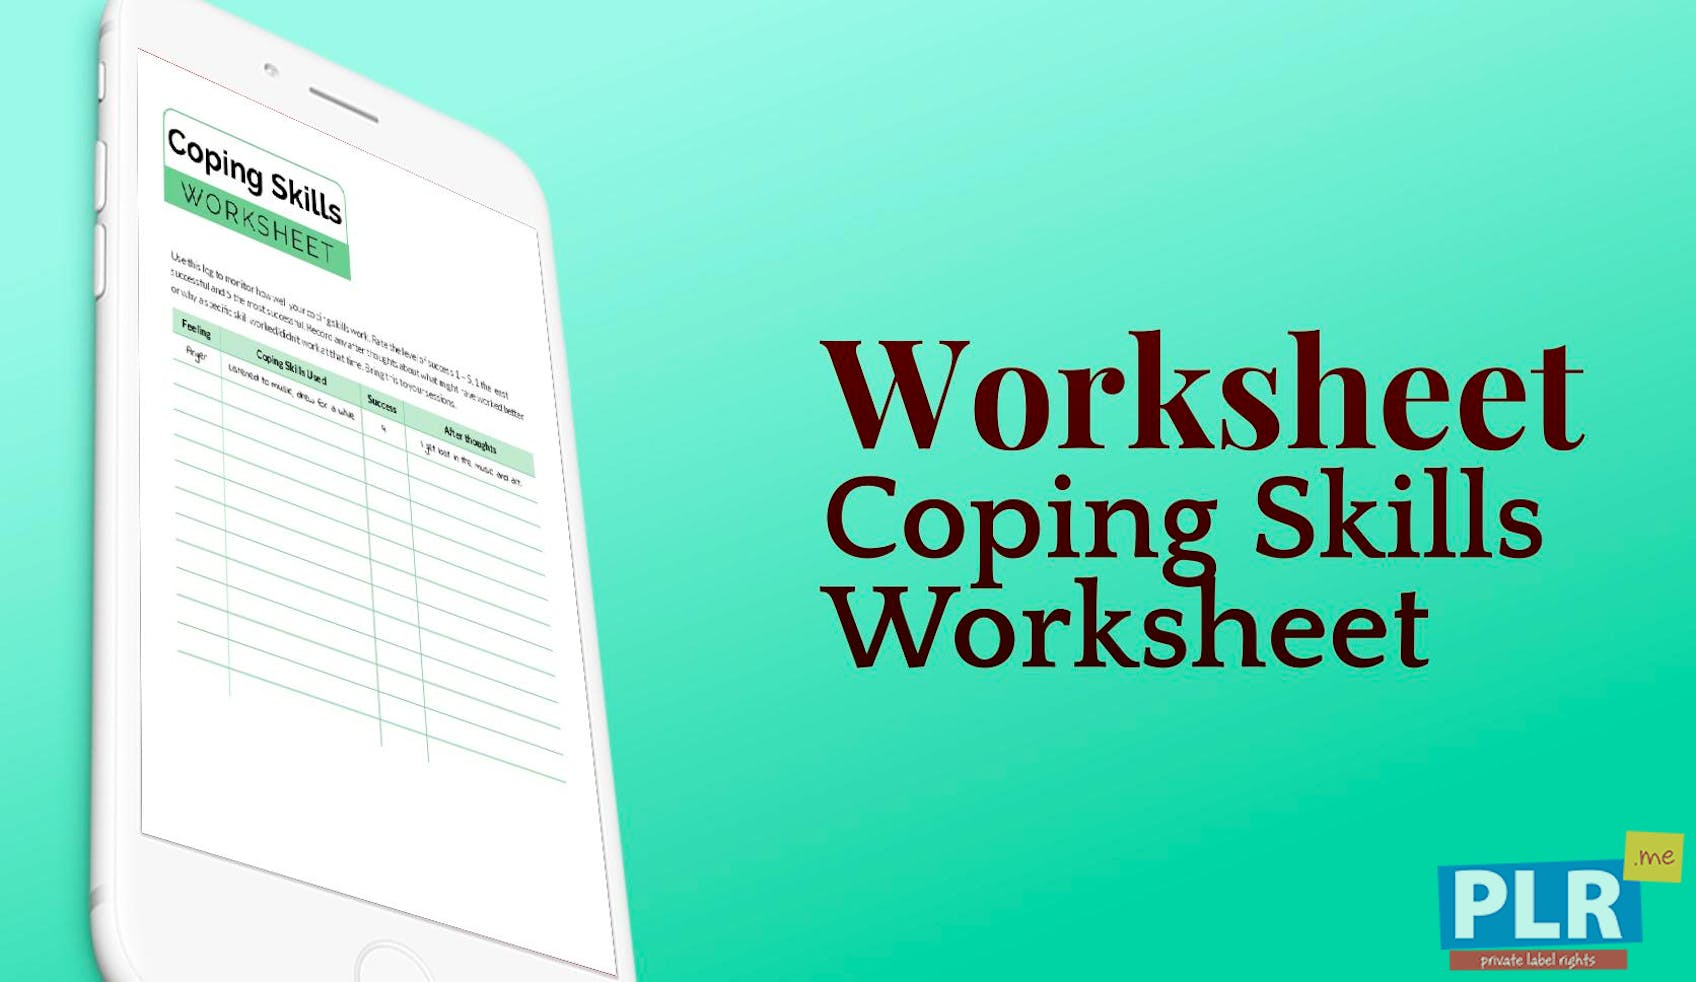 Coping Skills Worksheets Gallery - worksheet math for kids